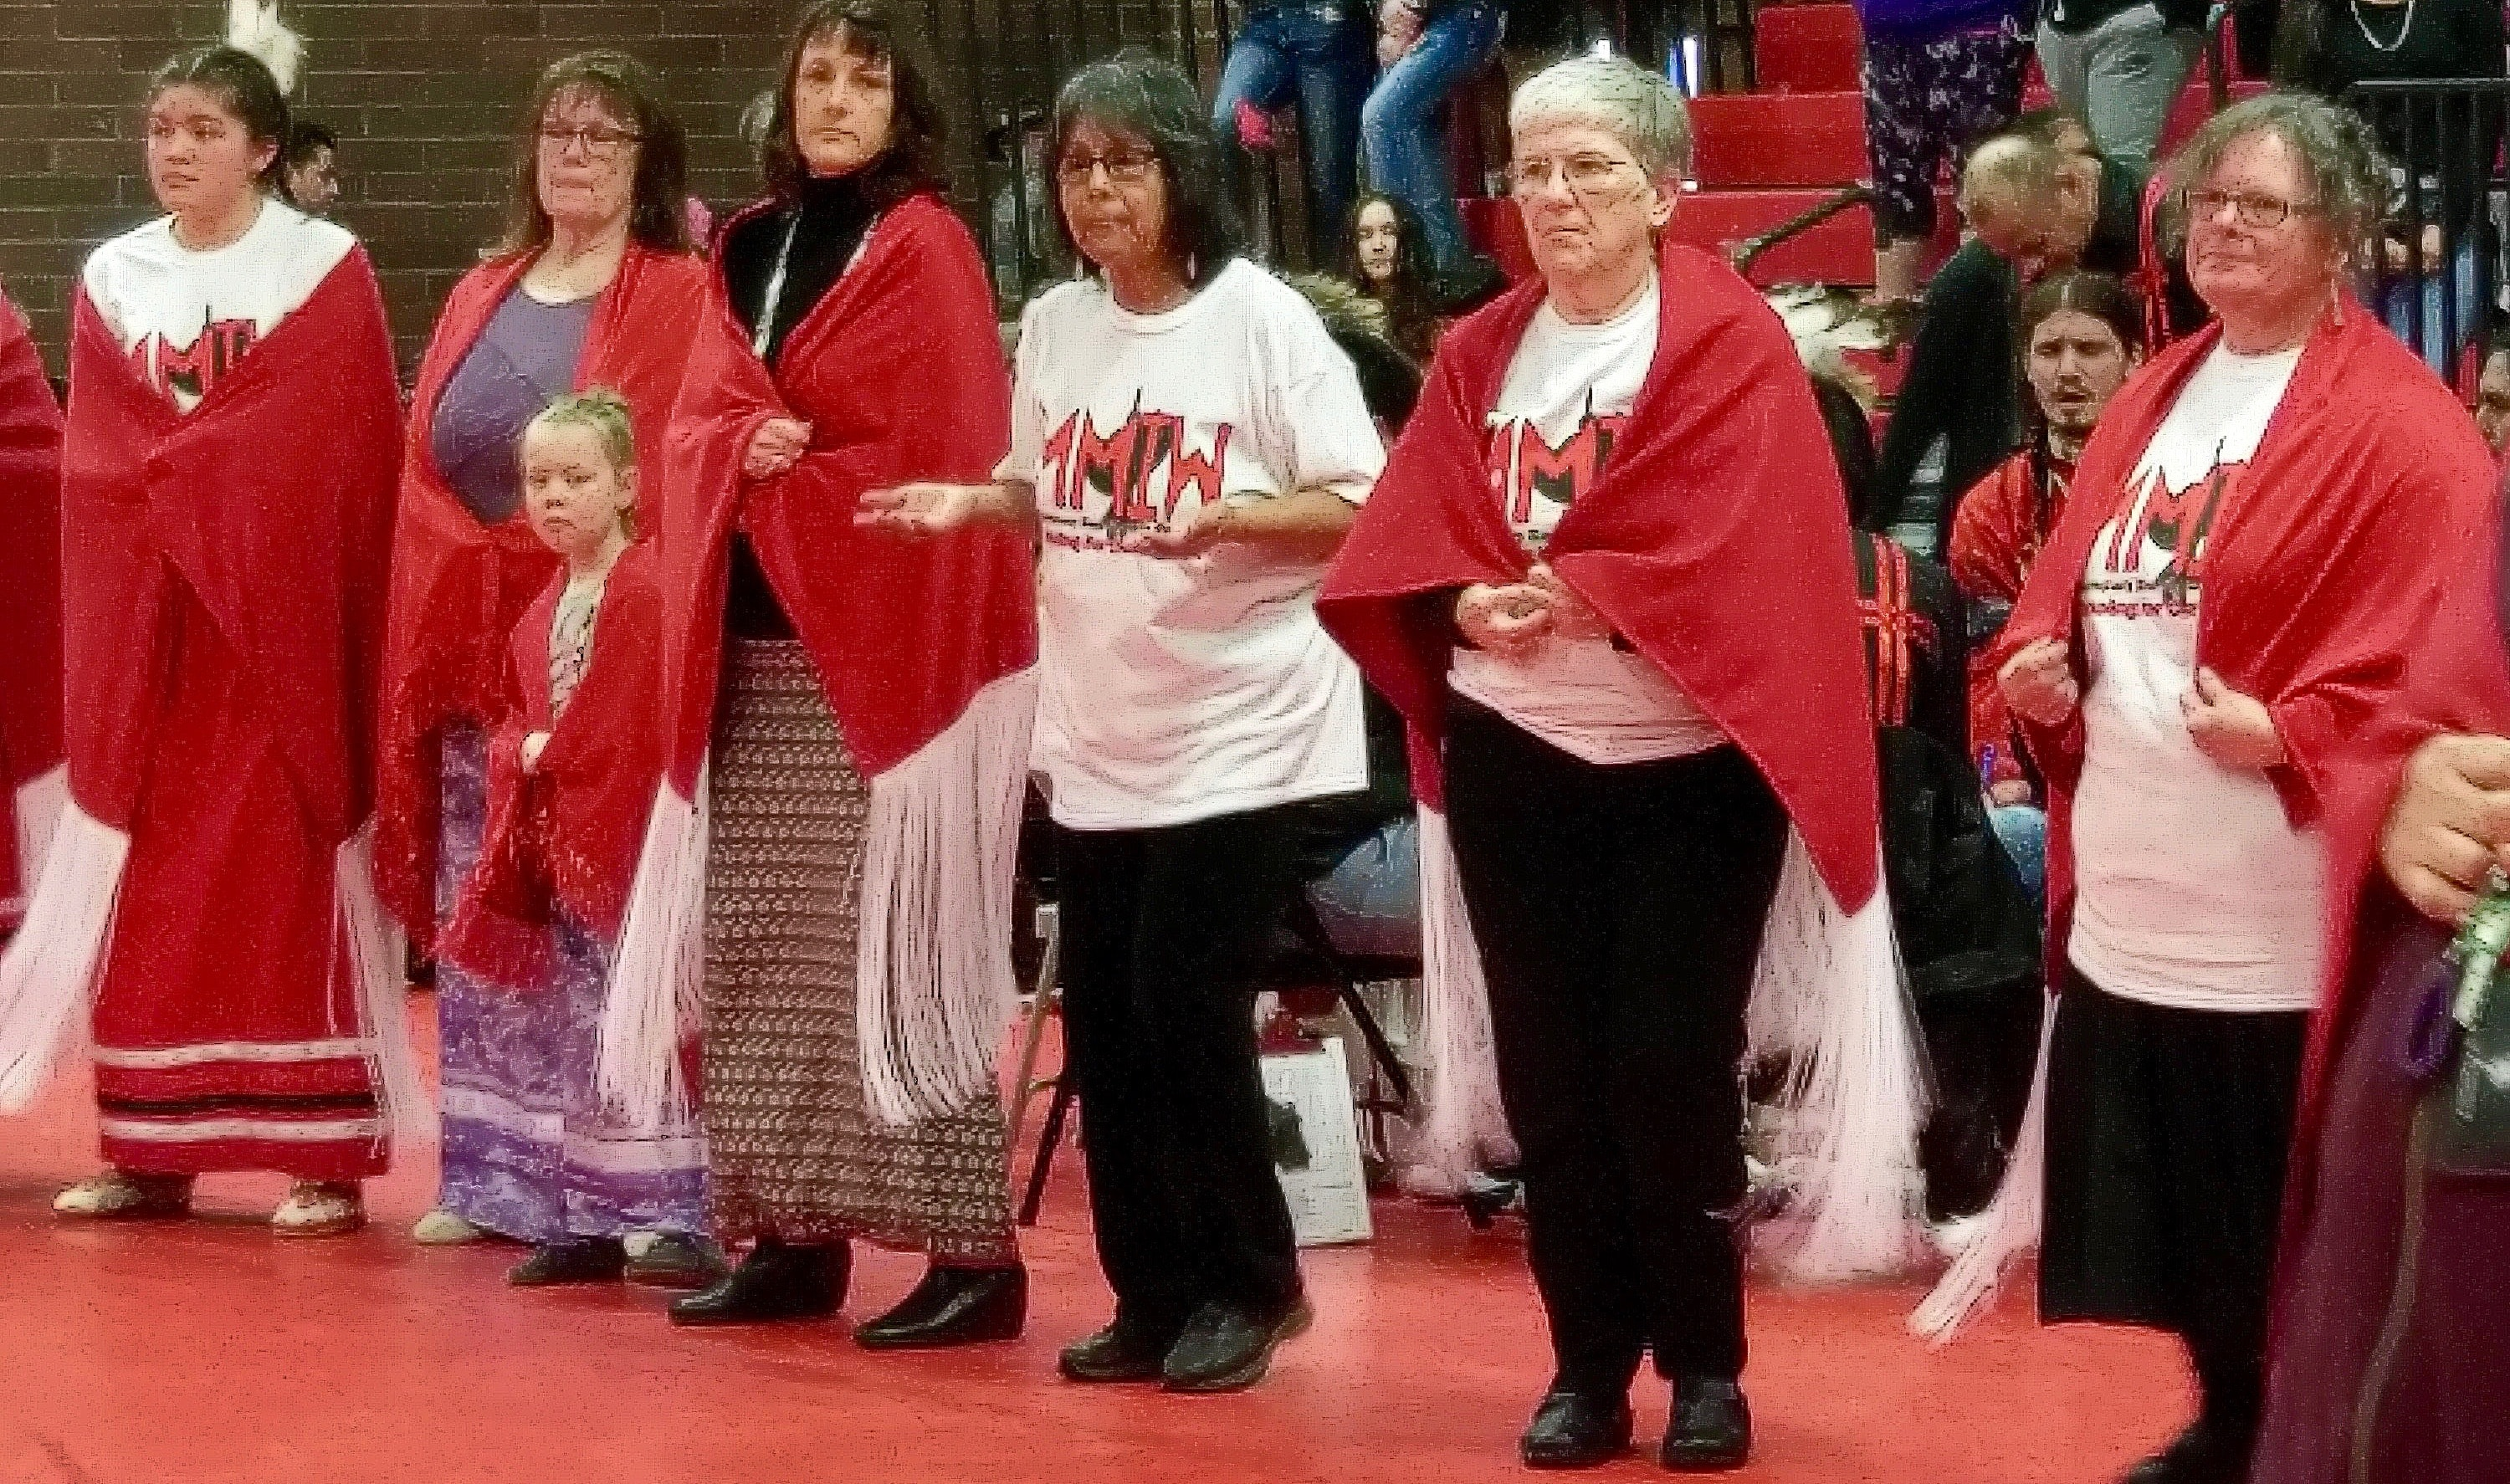 Women from Morningside United Methodist Church in Salem, Oregon, wear red shawls they helped to create during a dance to honor murdered and missing indigenous women at Chemawa Indian Boarding School. Photo by A. Wolf.